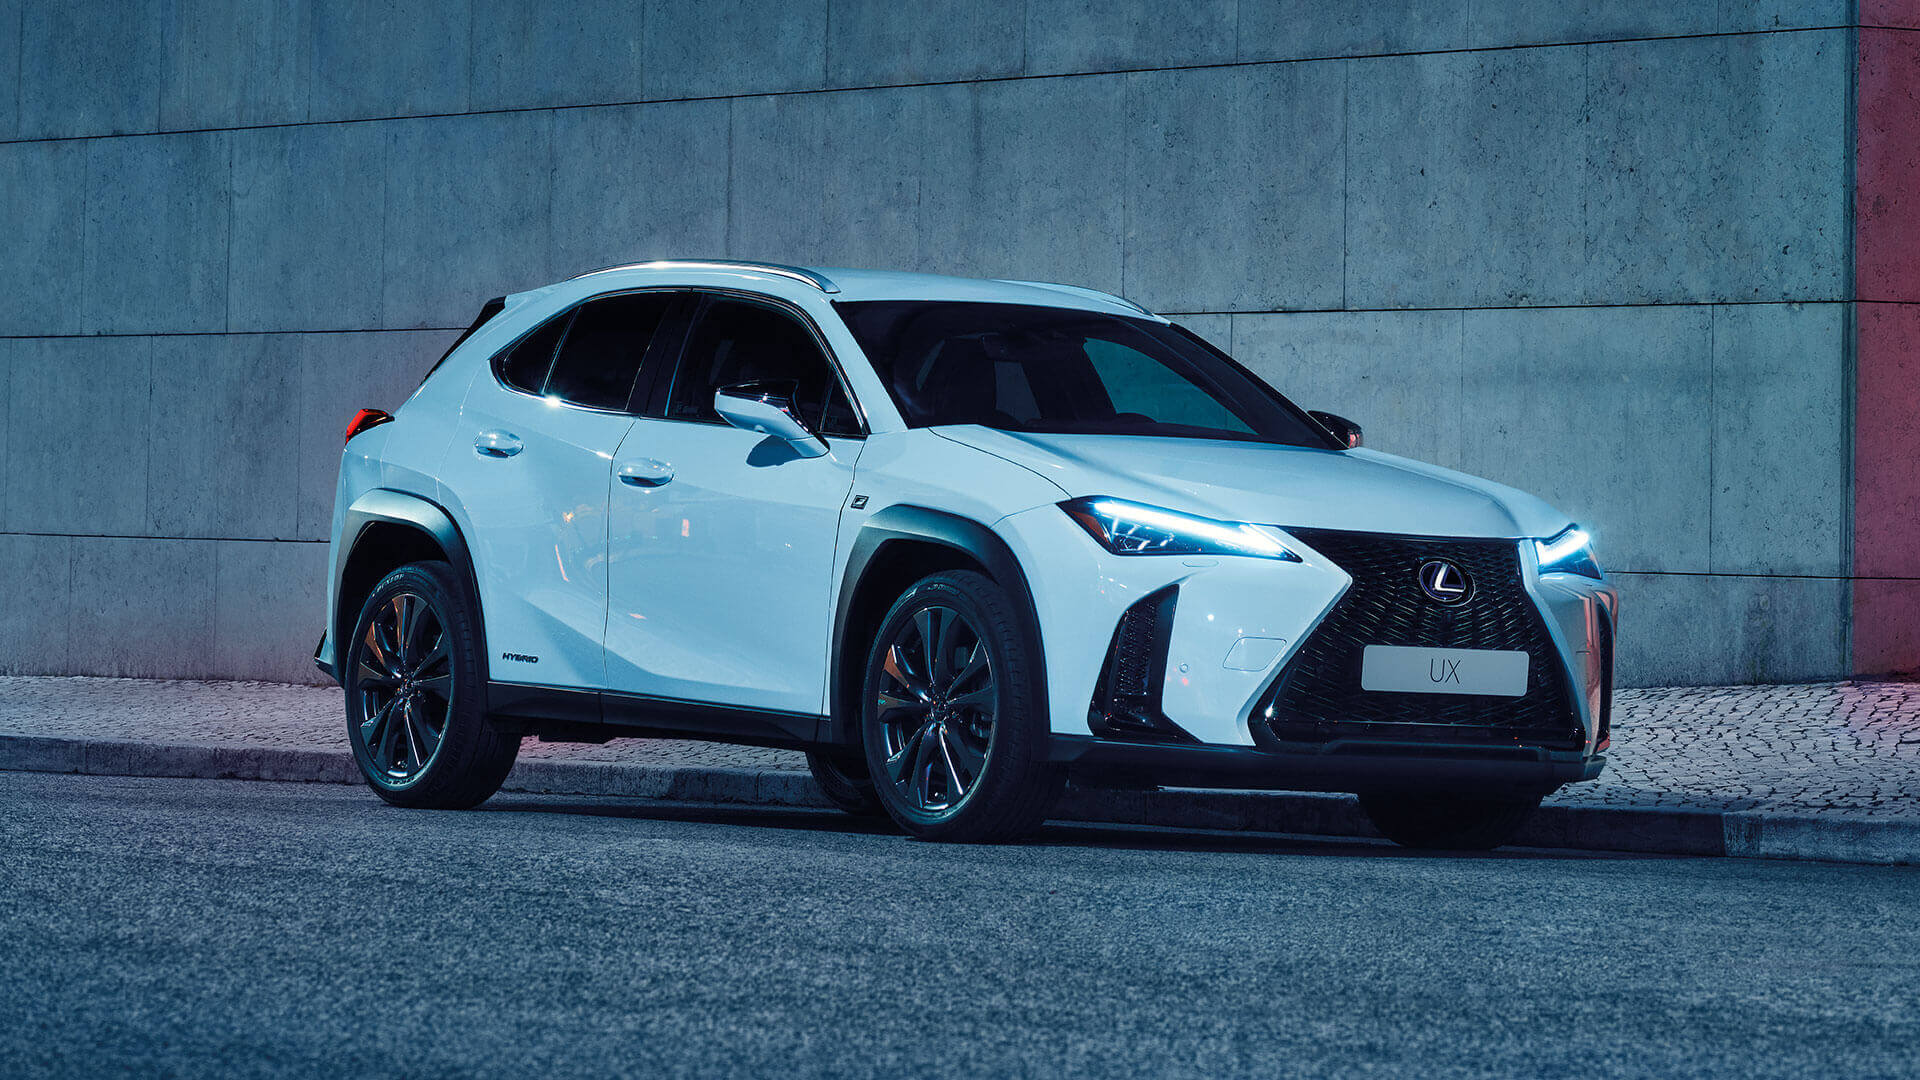 All New Ux Hybrid 2019 Compact Suv From 29905 New Lexus Uk